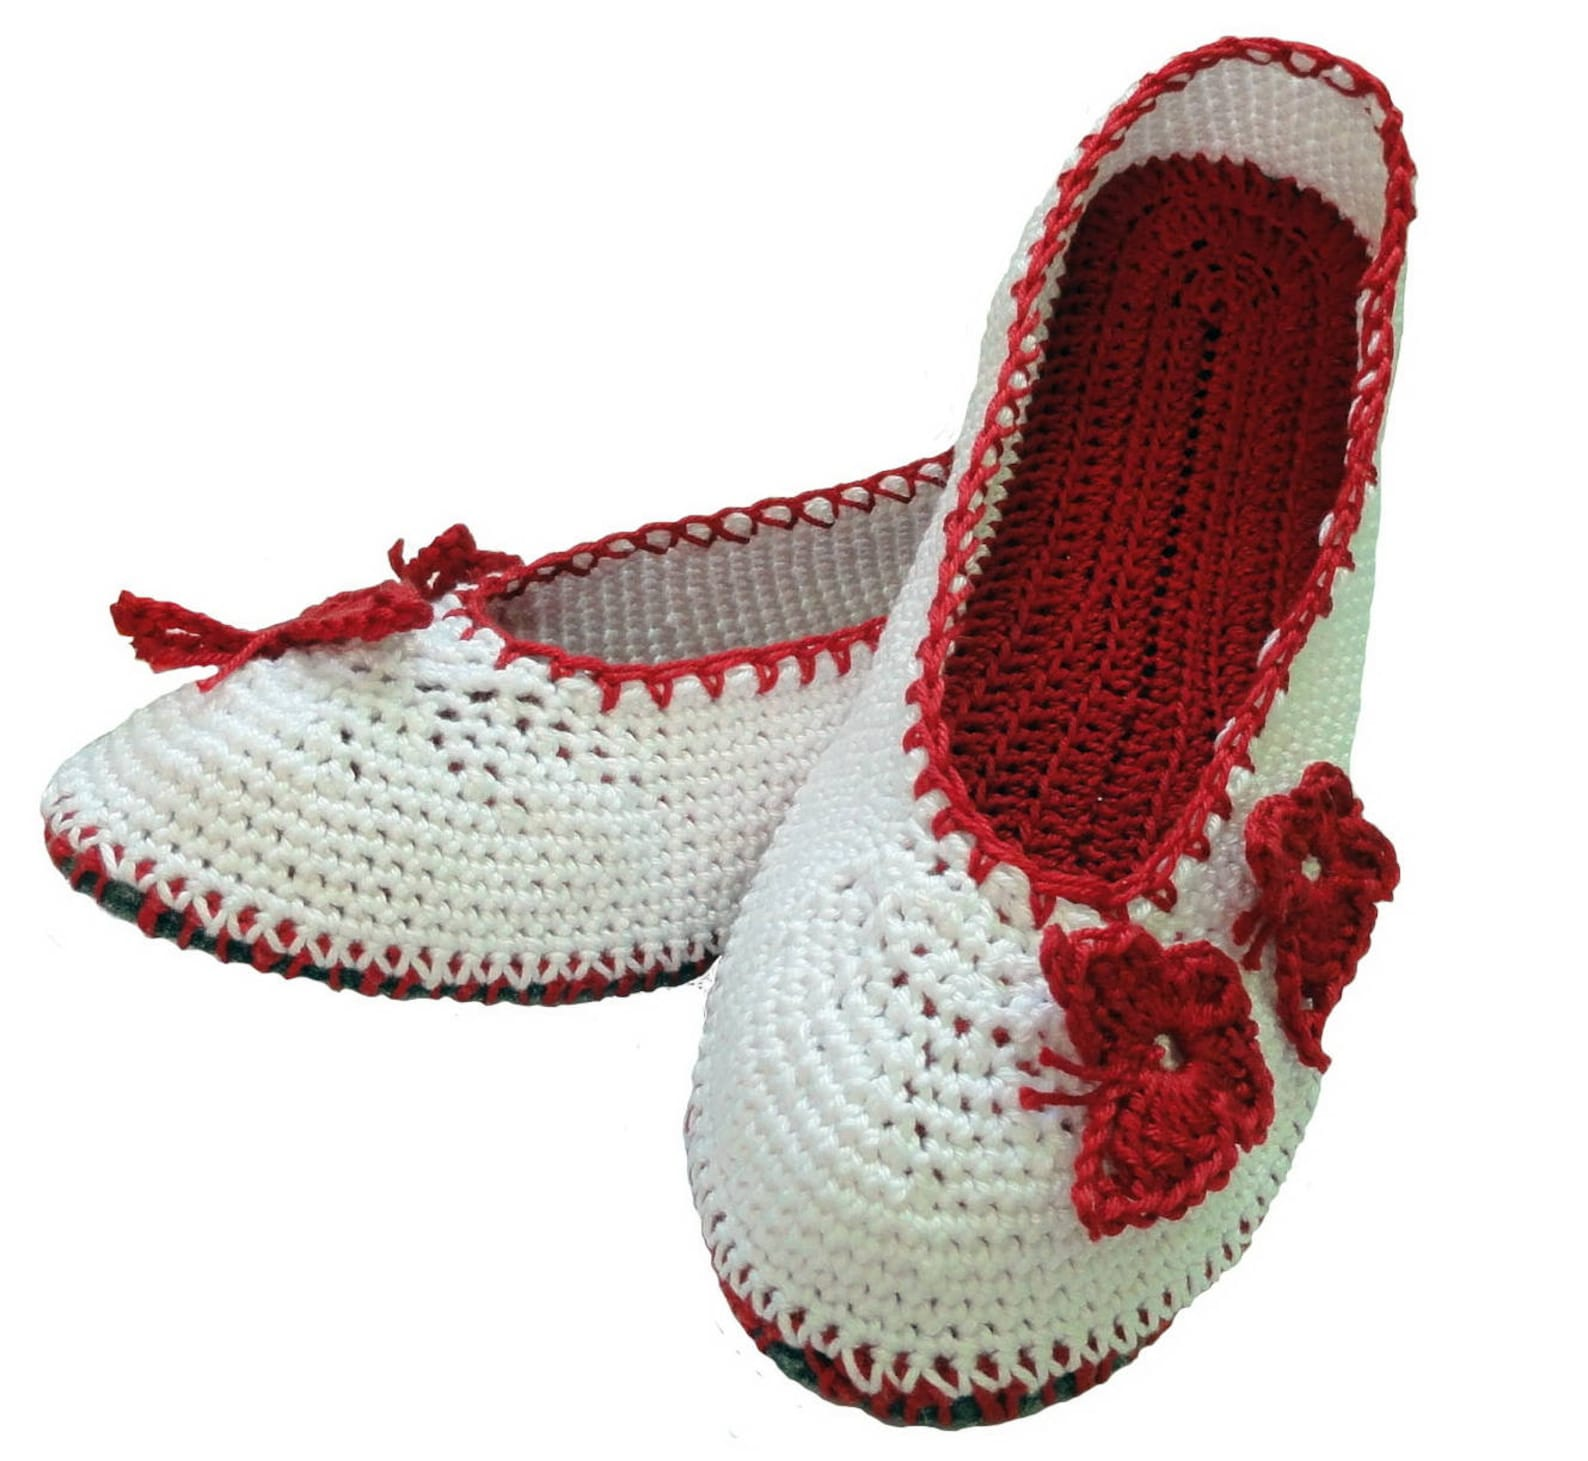 Сrochet slippers pattern, ballet shoes, slippers for women, slippers with butterflies pdf - pattern only